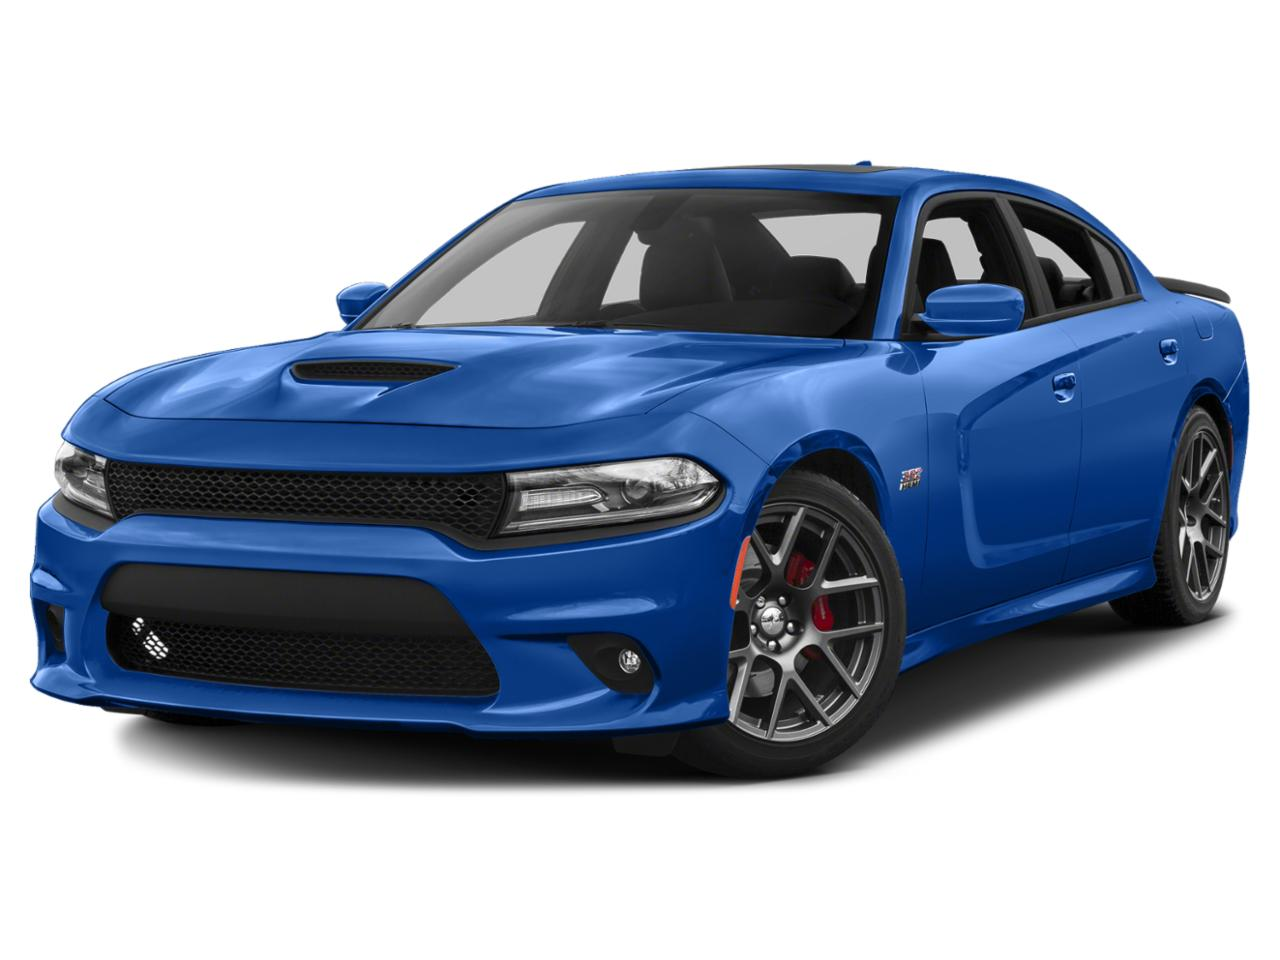 2018 Dodge Charger Vehicle Photo in Knoxville, TN 37912